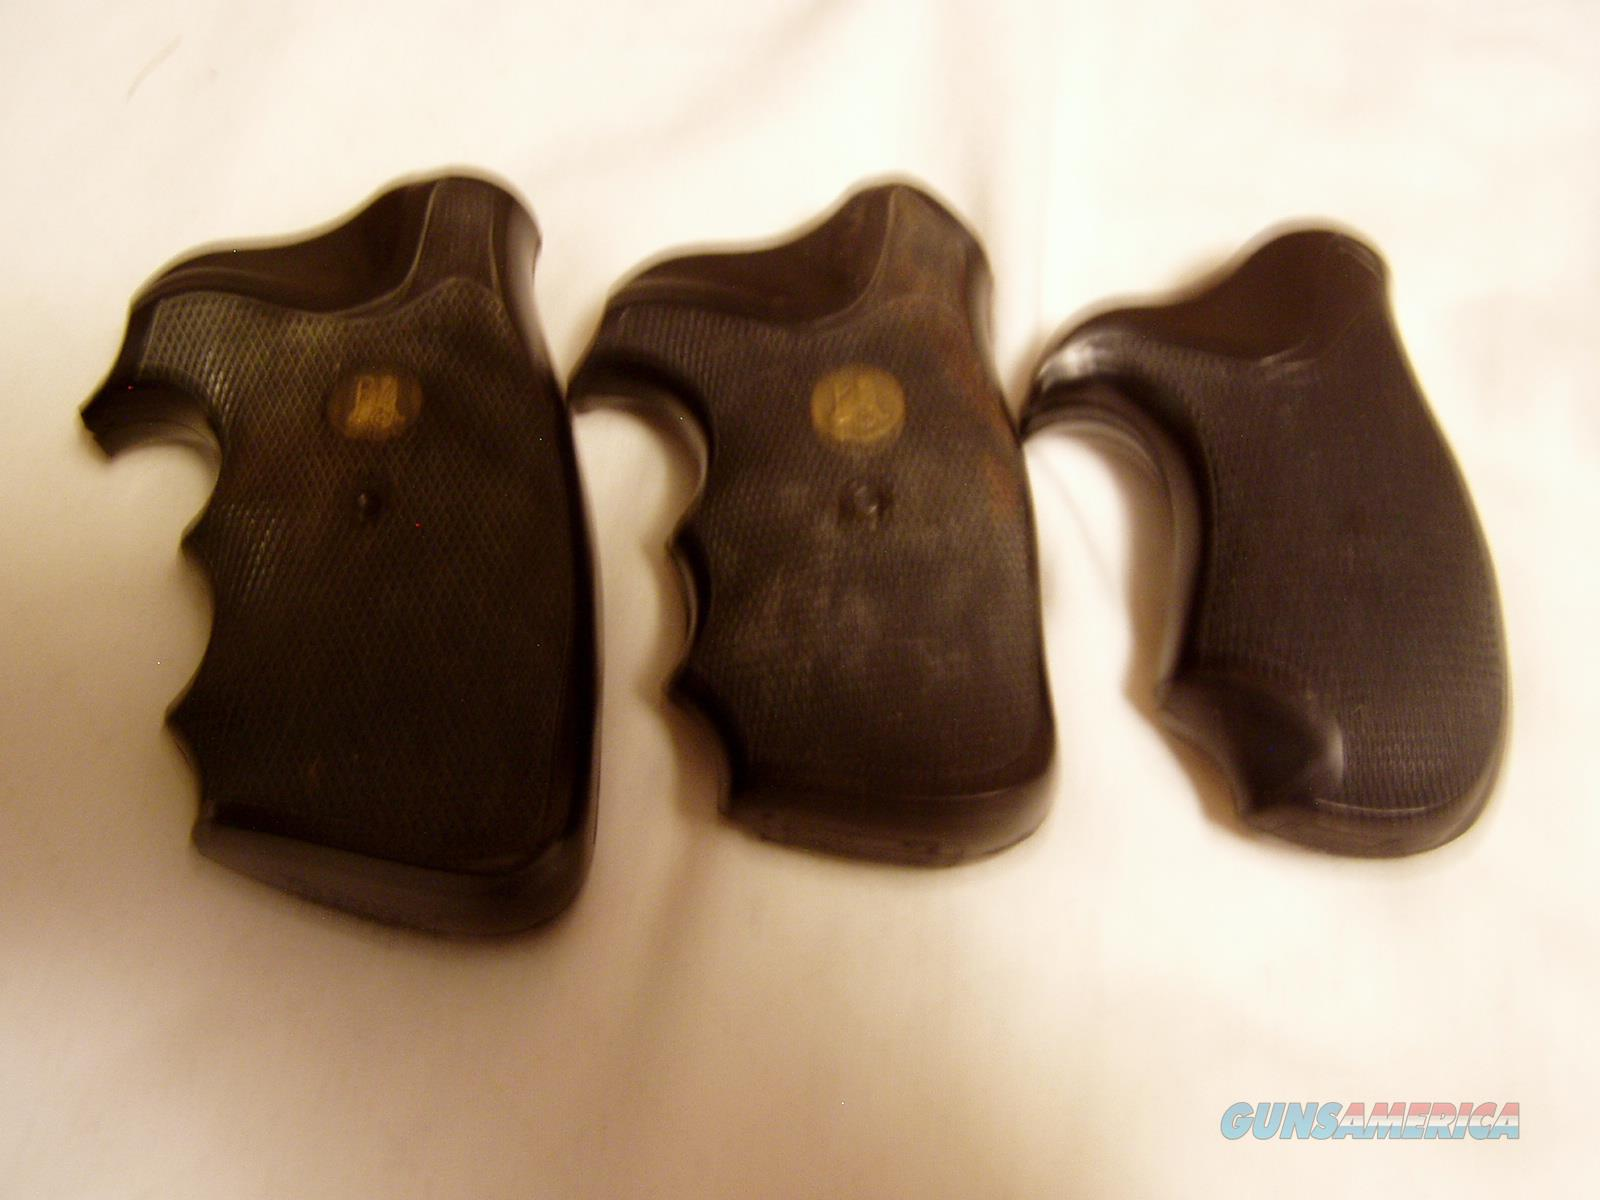 2  PAIR PACHMYERS  PRESENTATION COLT D FRAME GRIPS  1 PRESENTATION COMPAC  WITH OUT PACHMYERS GRIP MEDALION  1 PAIR ( THE BIGEST LOOKING ONE )  MARKED COLT I   2  FRAME $ 59.00  Non-Guns > Gunstocks, Grips & Wood